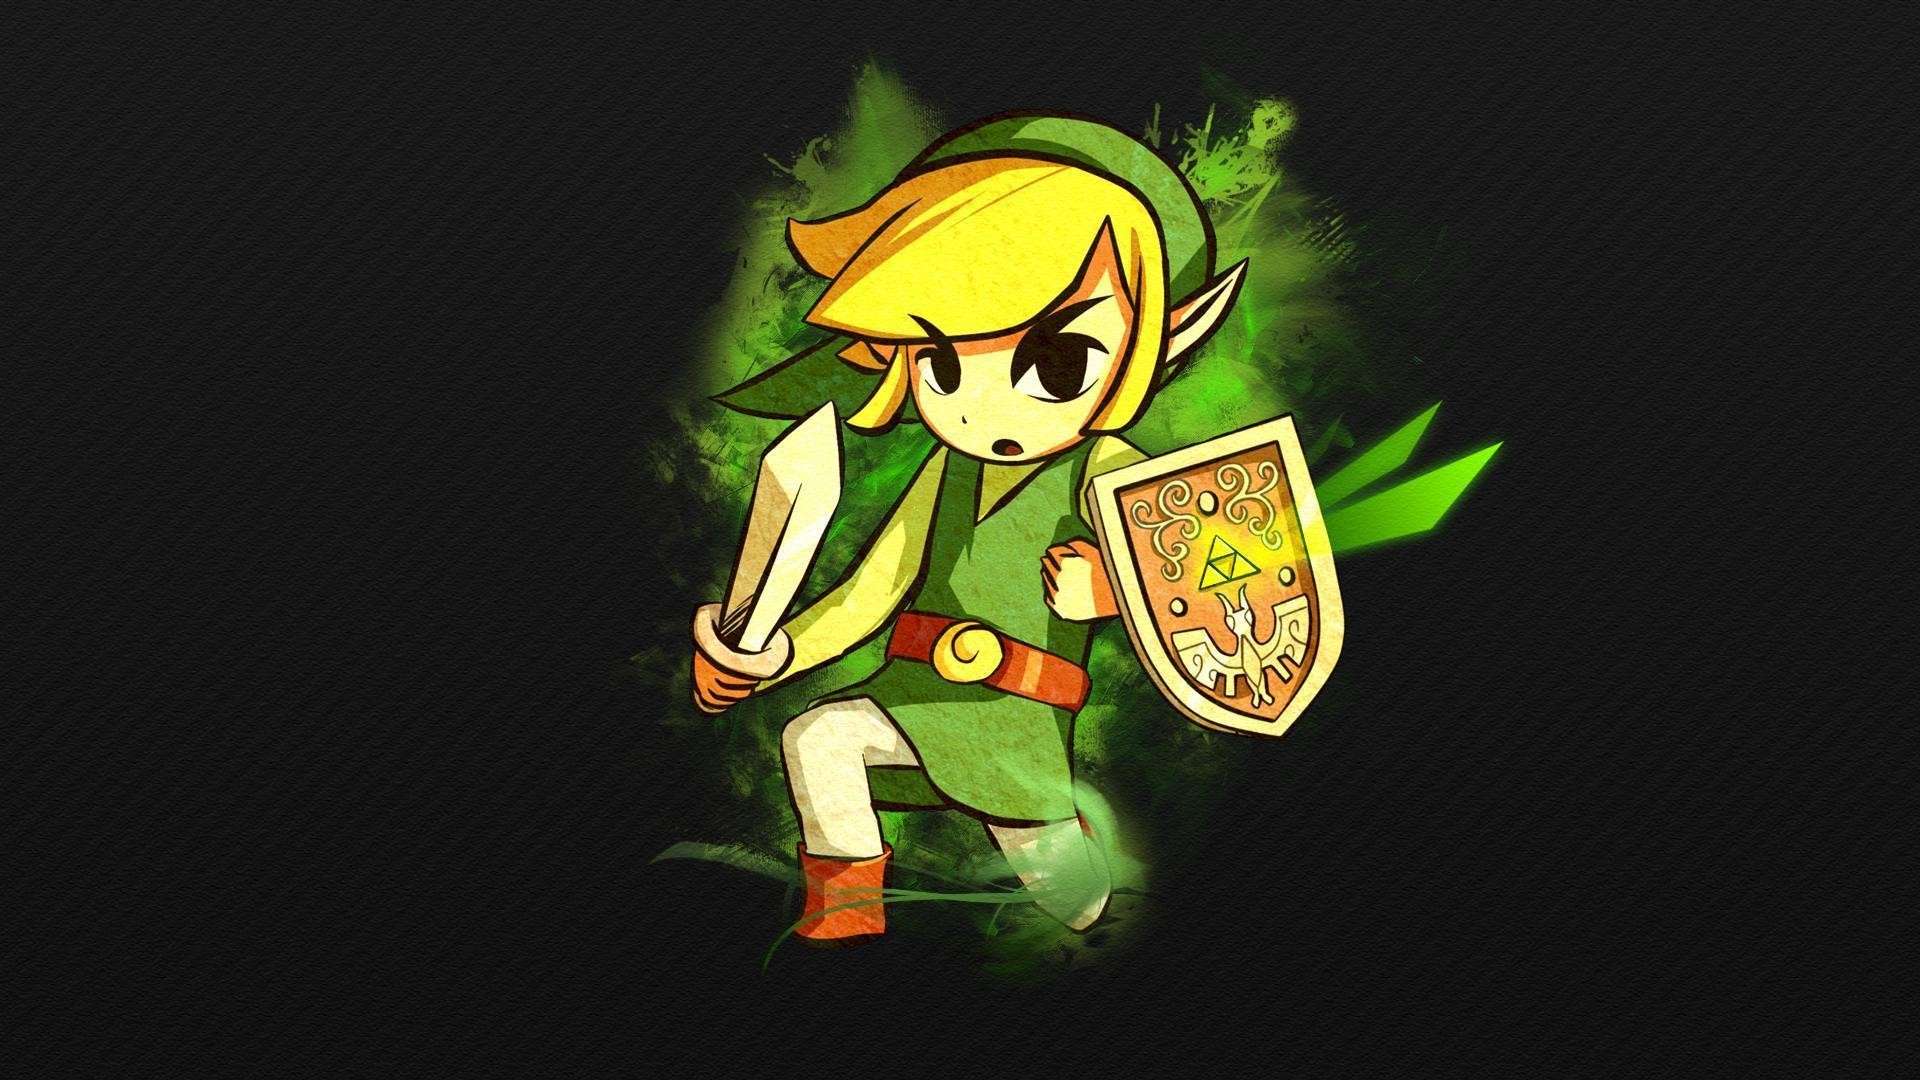 1920x1080 148 The Legend Of Zelda Wallpapers | The Legend Of Zelda .